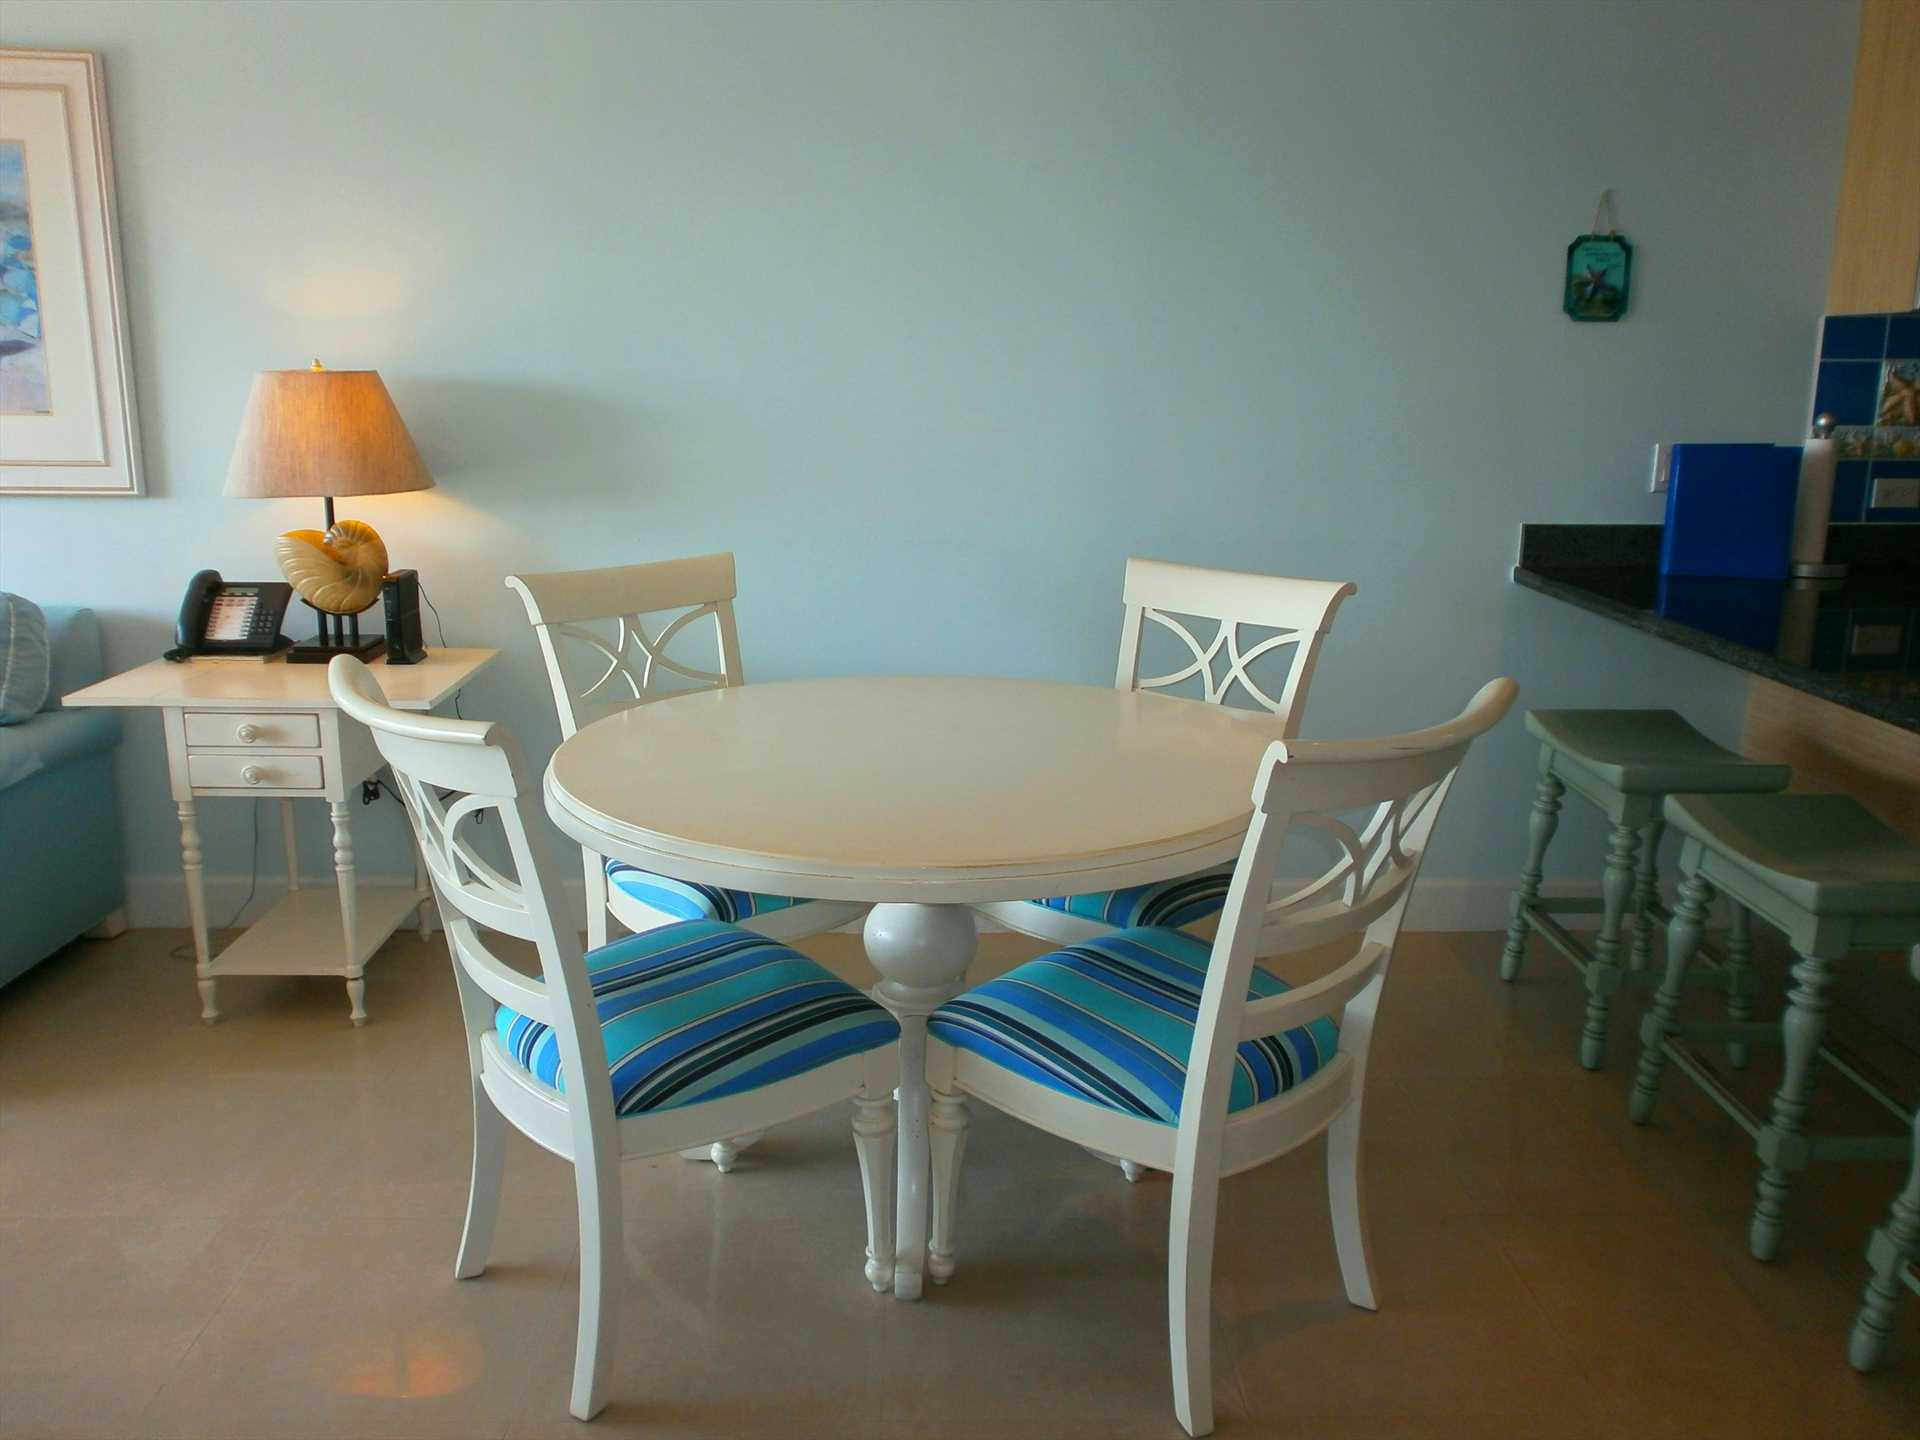 Dining area with 4-seat round table and 3-seat bar-table.